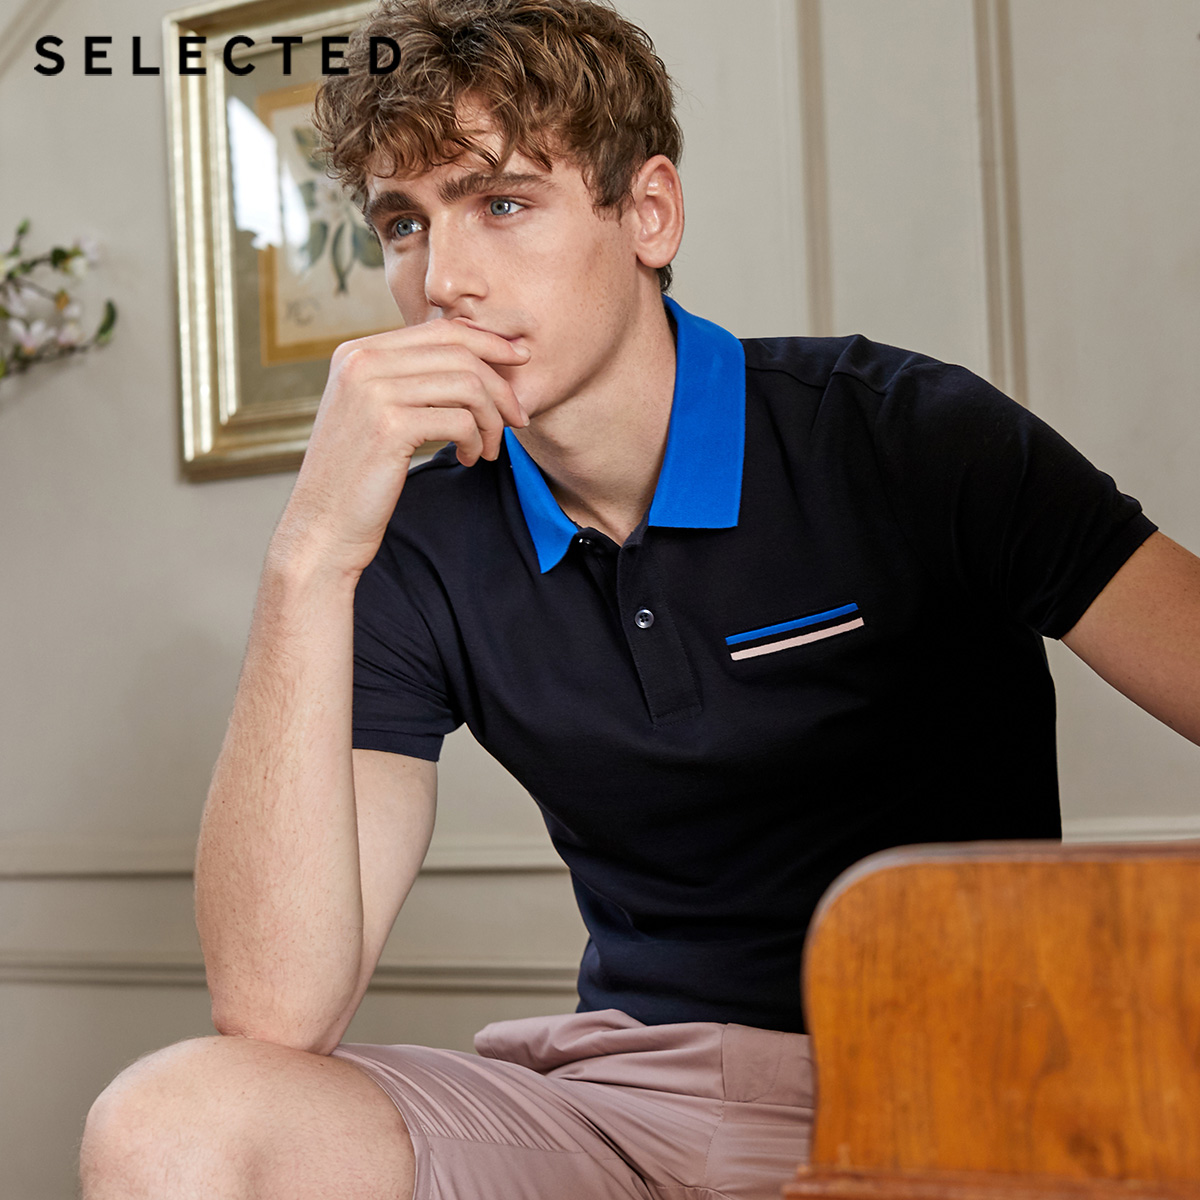 SELECTED Men's Summer 100% Cotton Contrasting Turn-down Collar Short-sleeved Poloshirt S|419106506